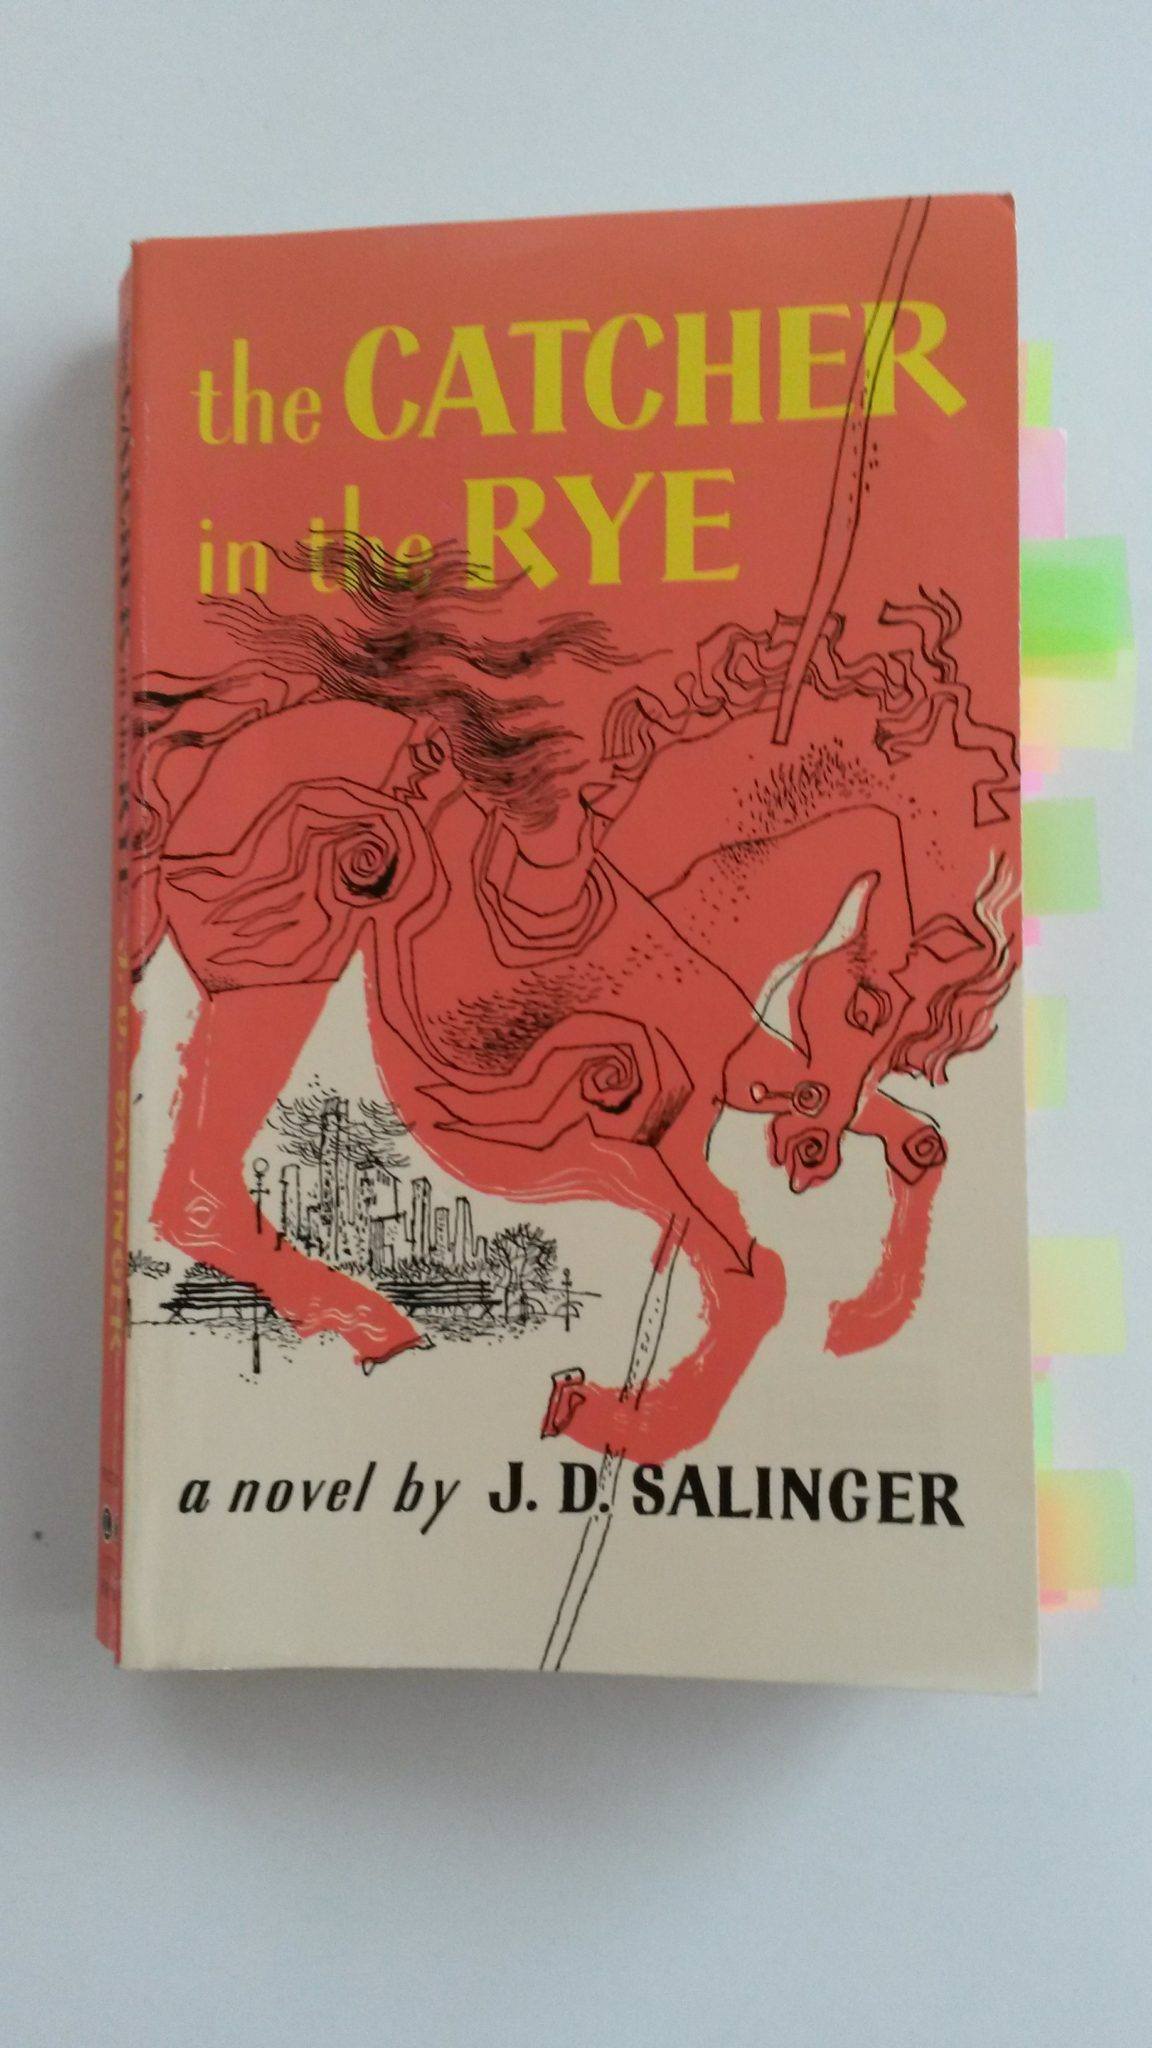 an analysis of the story of the catcher in the rye by jd salinger About jd salinger: jerome david salinger was an american author, best known for his 1951 novel the catcher in the rye, as well as his reclusive nature.